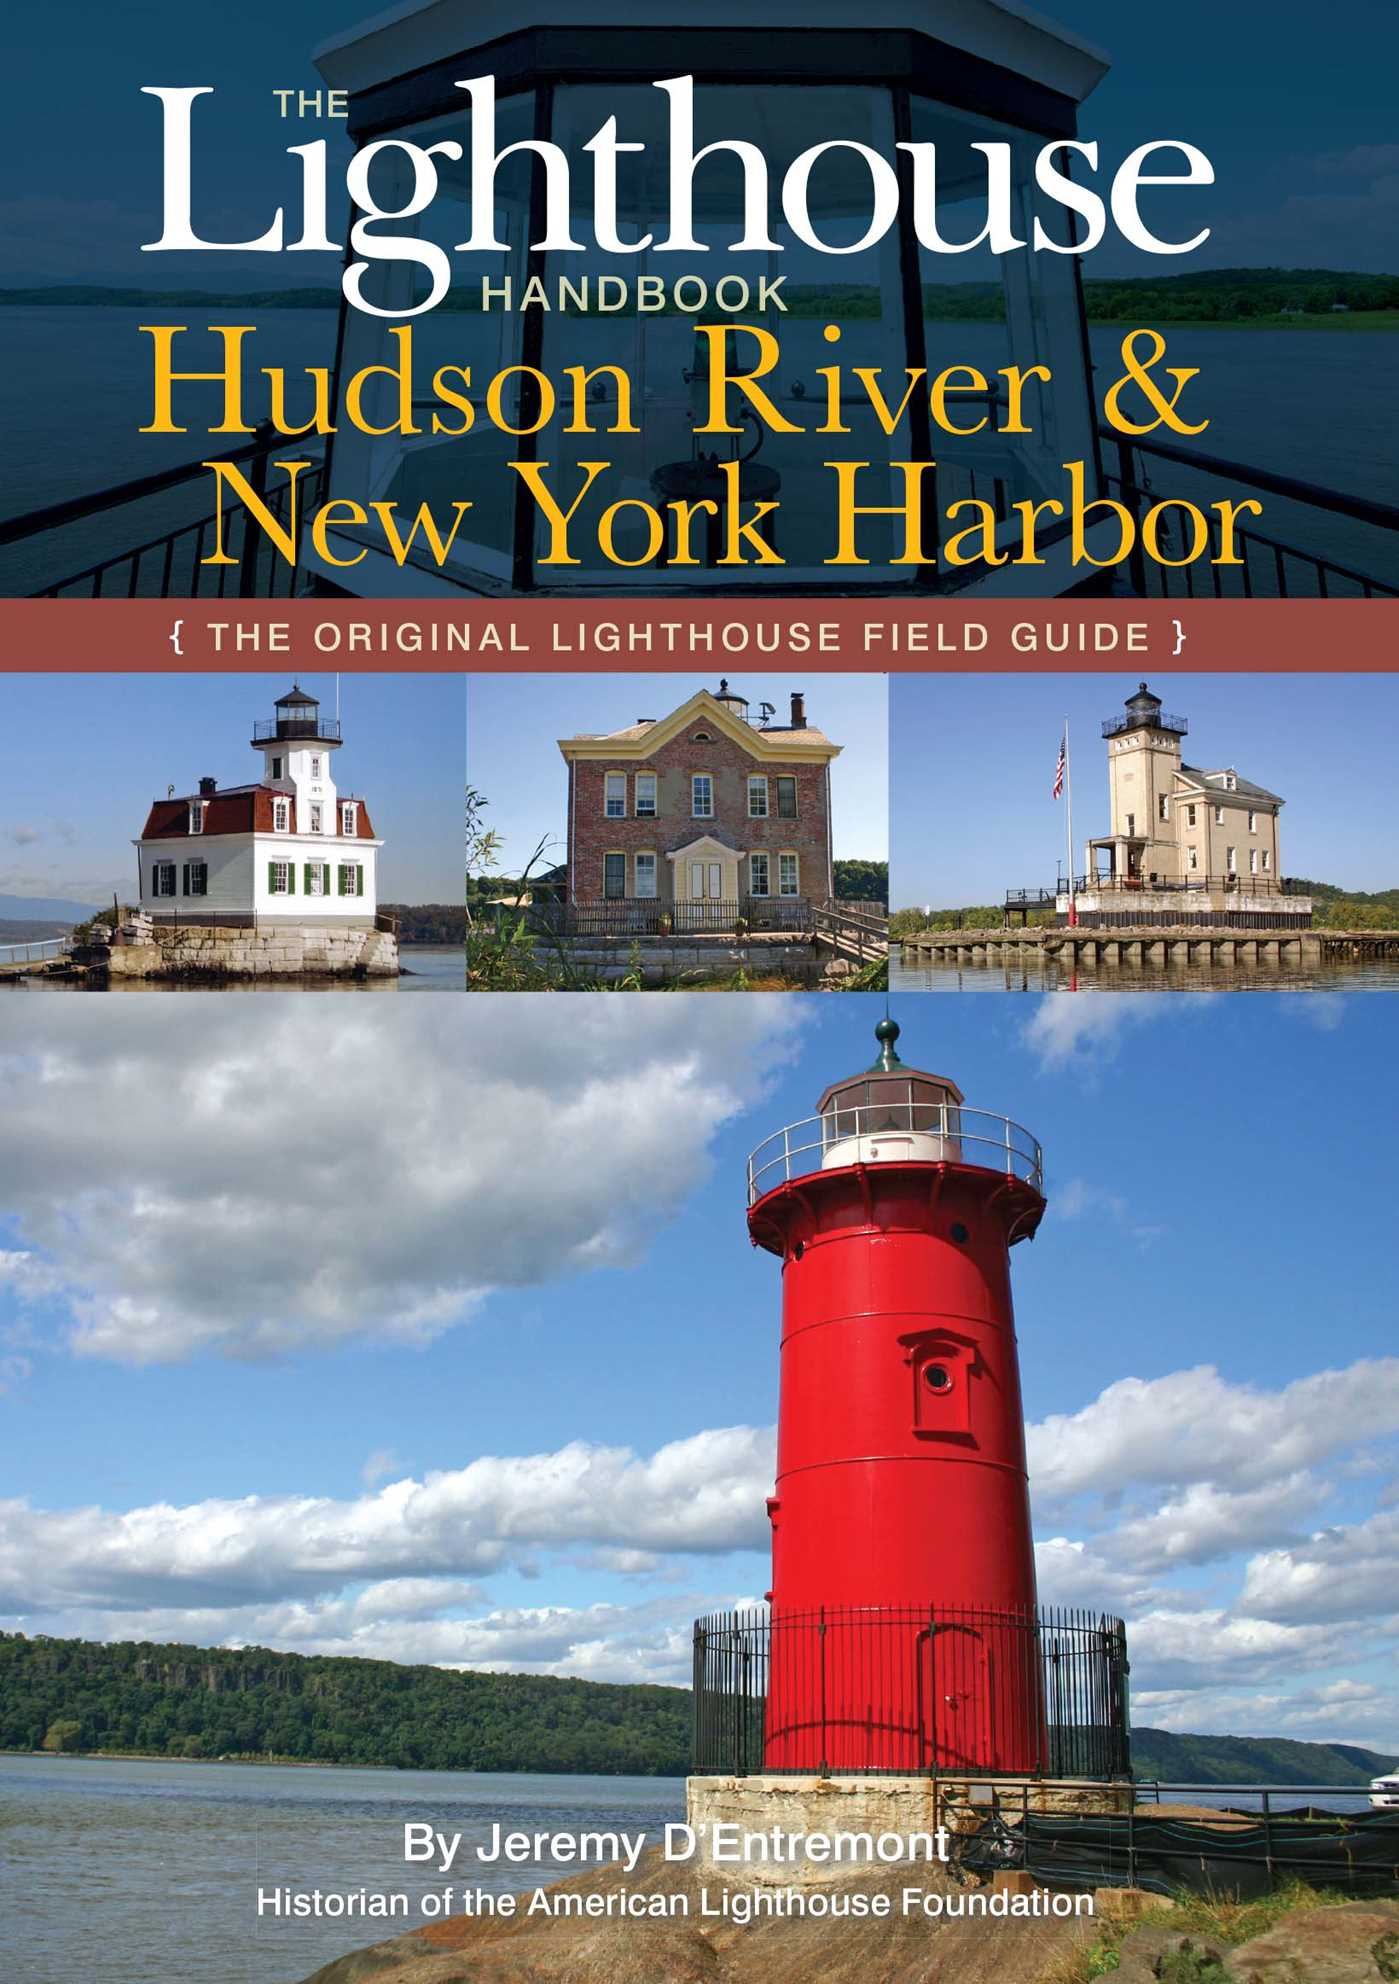 The lighthouse handbook the hudson river 9781604330403 hr